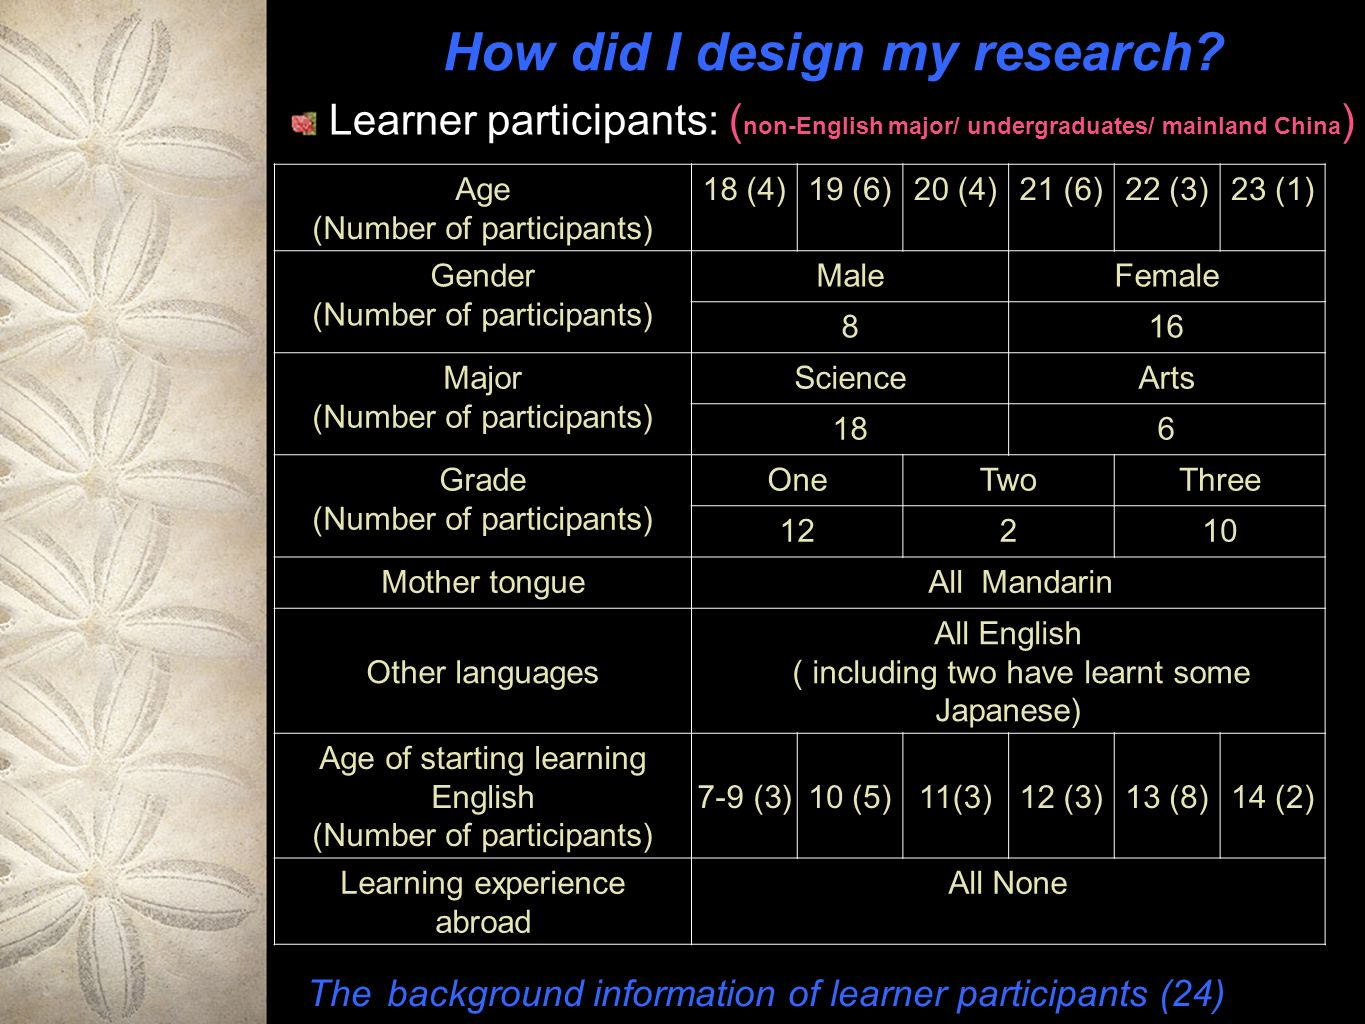 How did I design my research